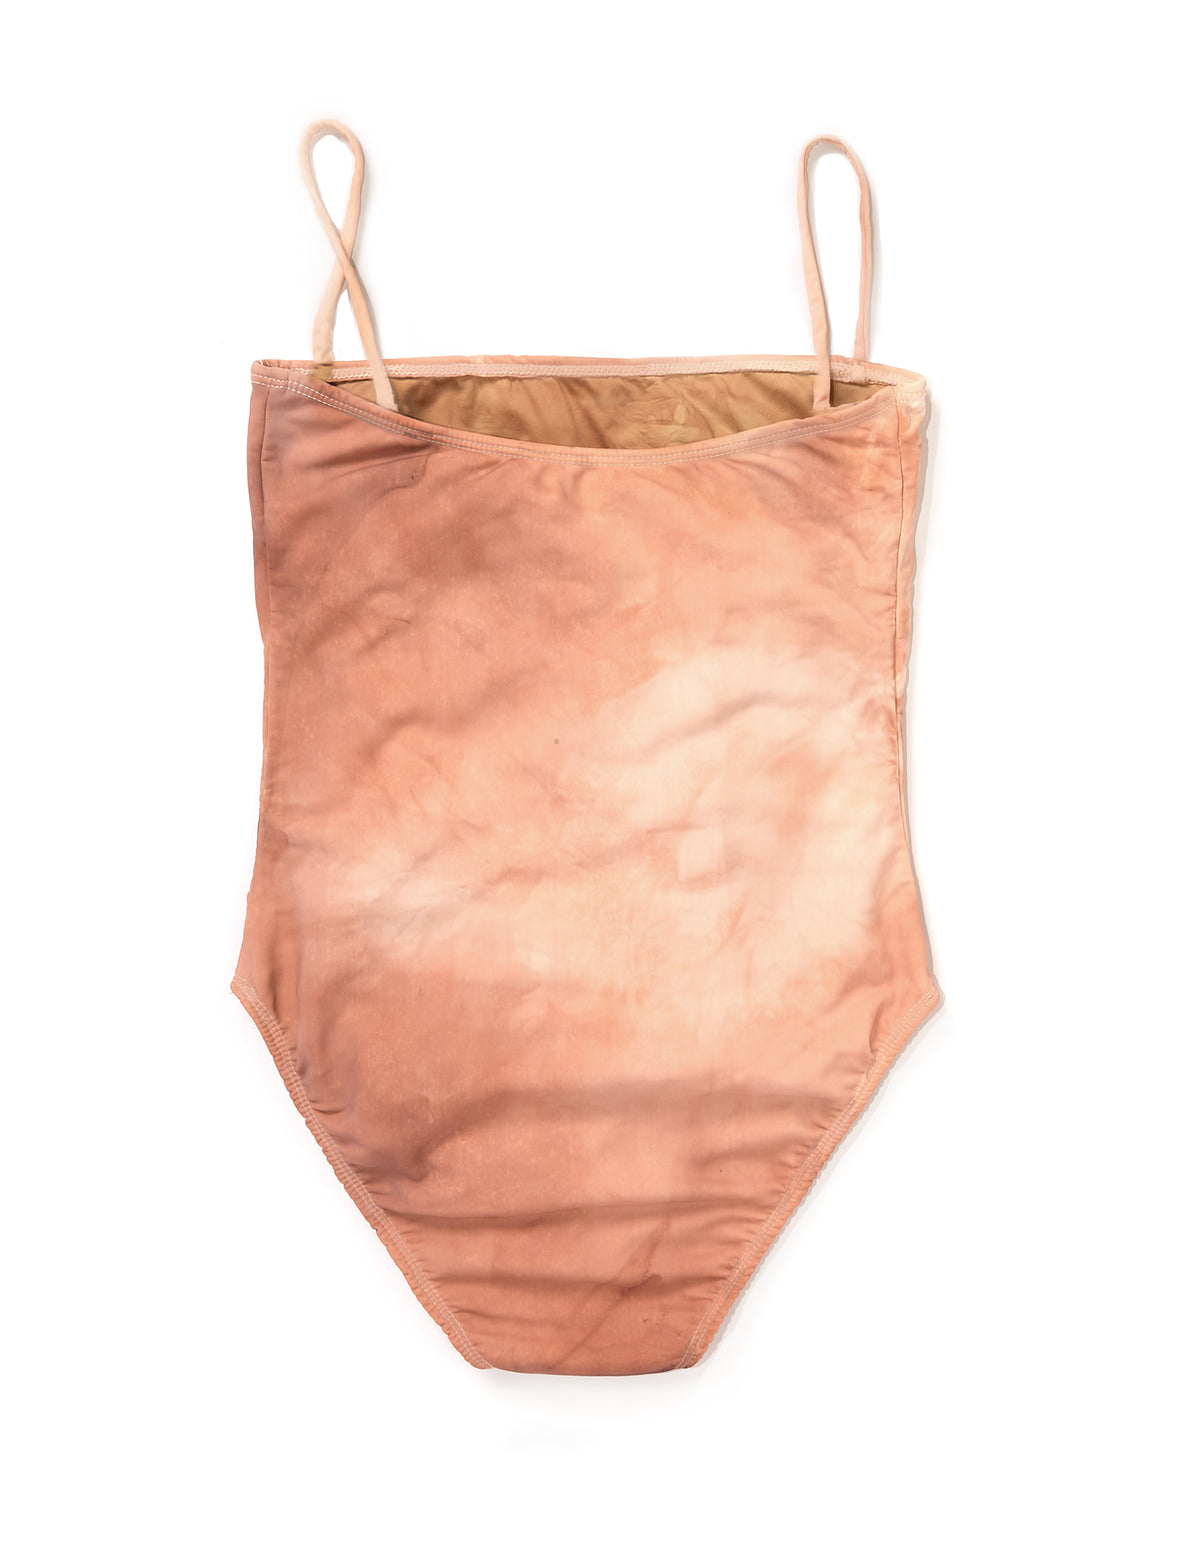 Camp One Piece Swimsuit in Blush - riverside tool & dye